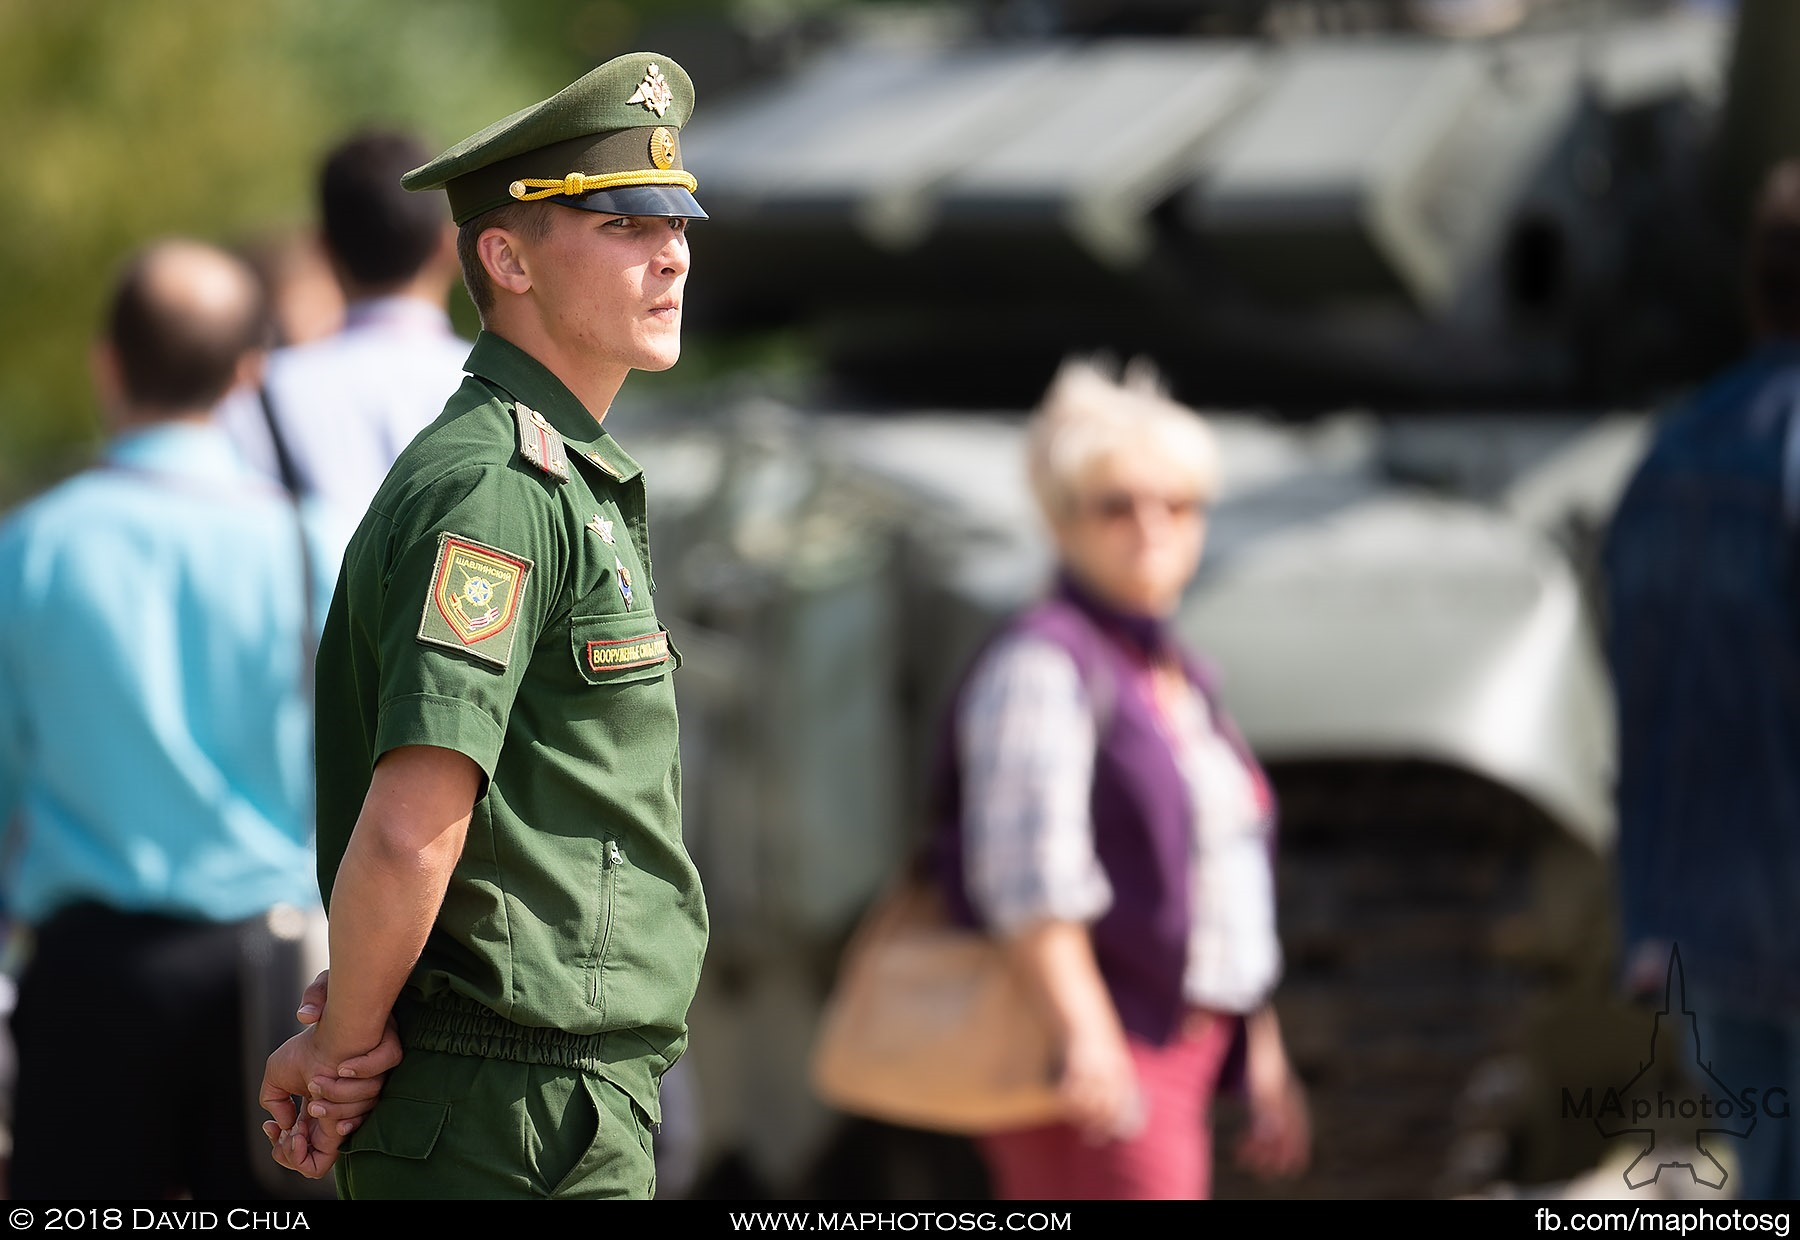 09. Russian soldier watches over static tank displays at the Alabino Live Firing Range.